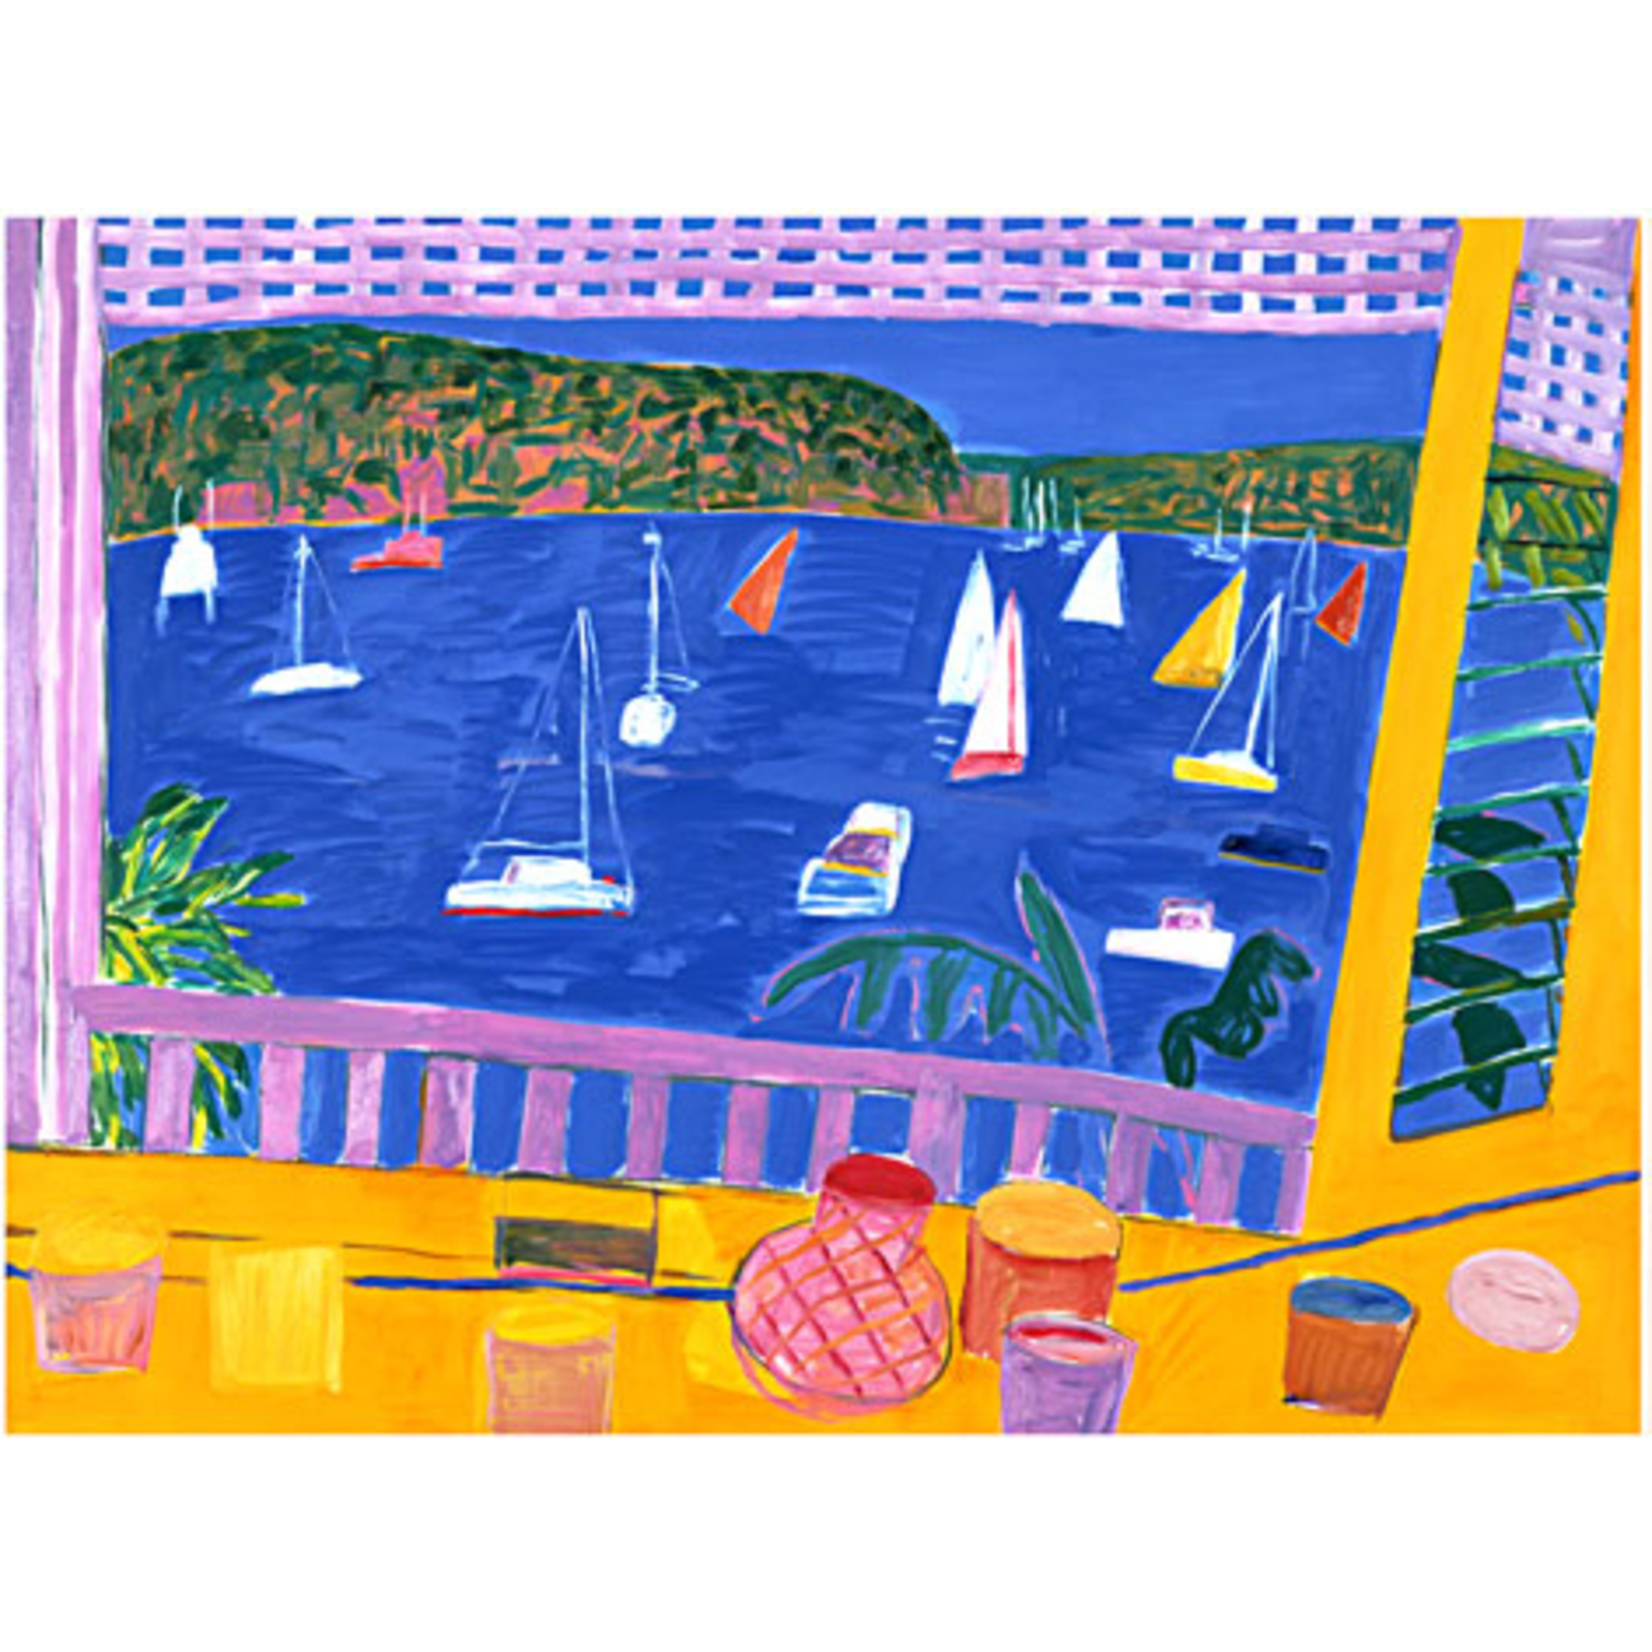 Limited Edition Prints Long view of the Cabin I-IV, 1992